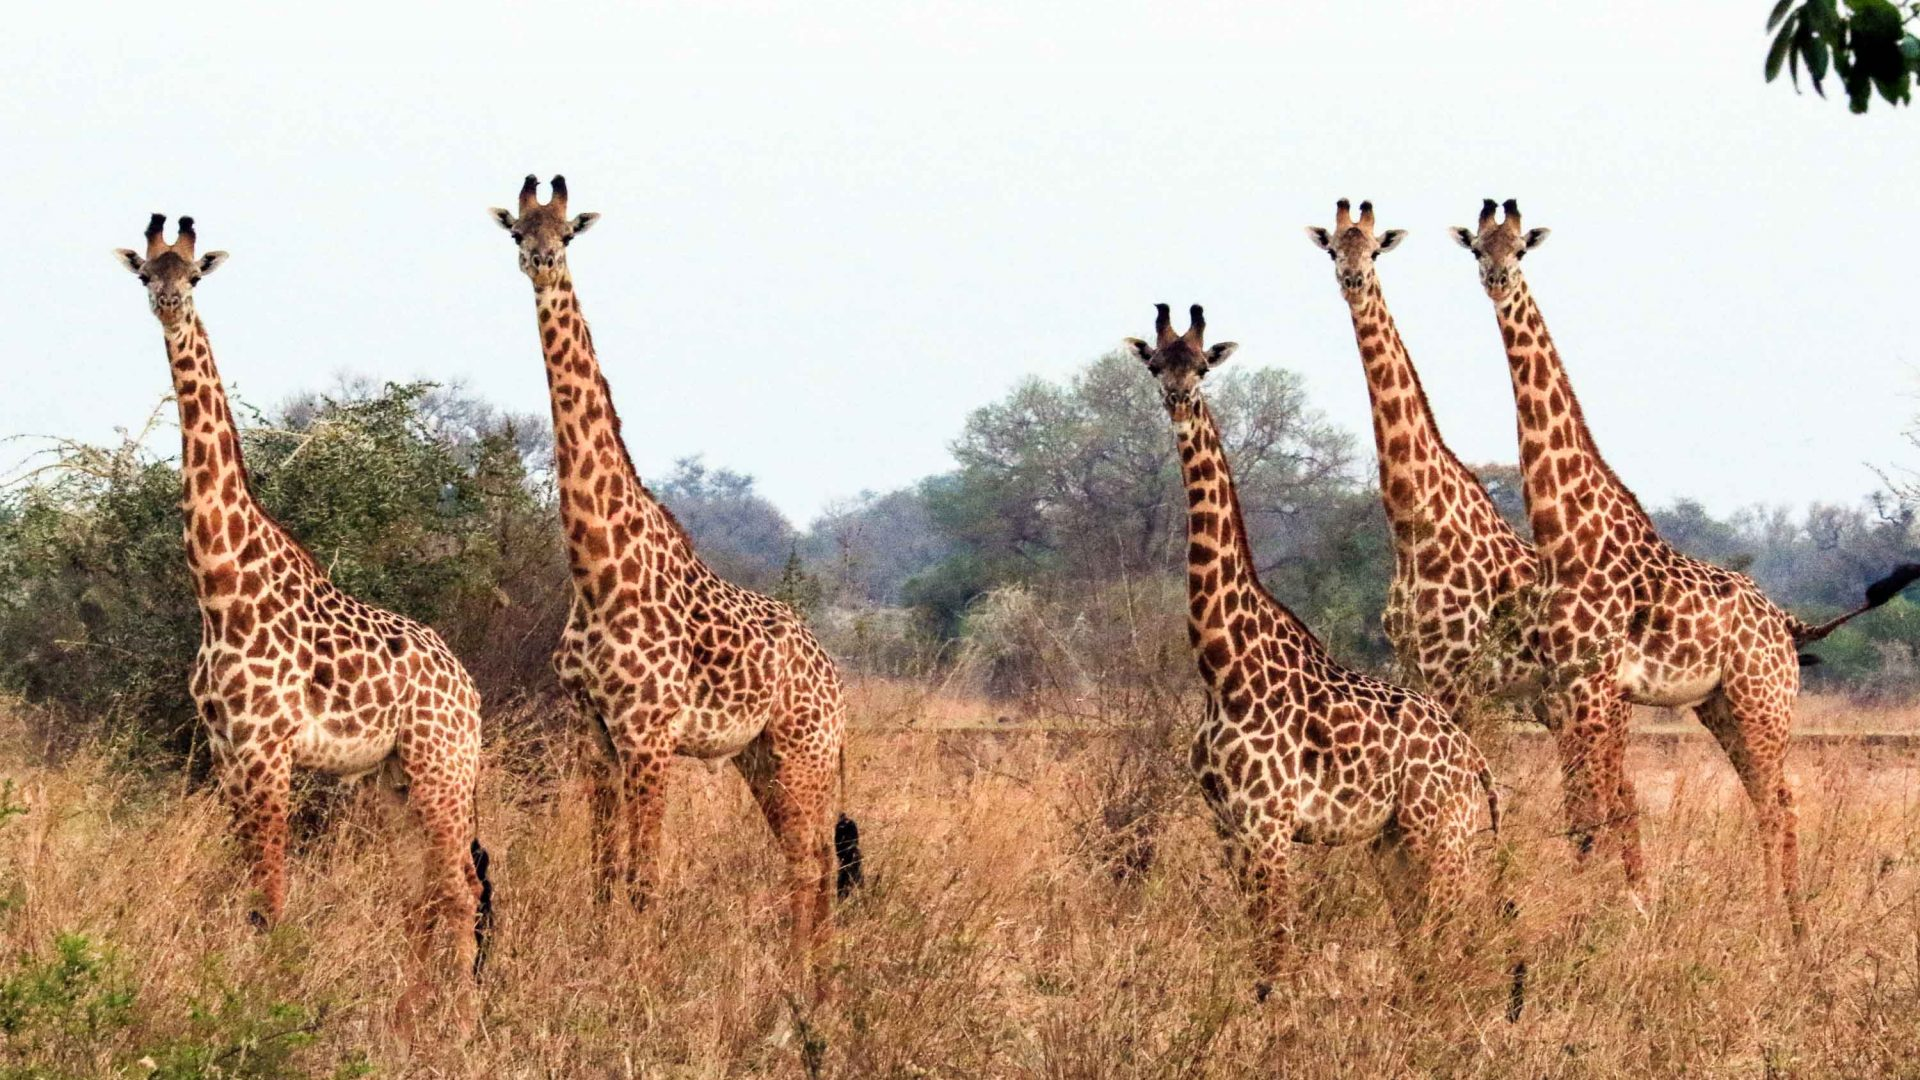 A tower of giraffes in the warm soft light of the morning sun in South Luangwa National Park.